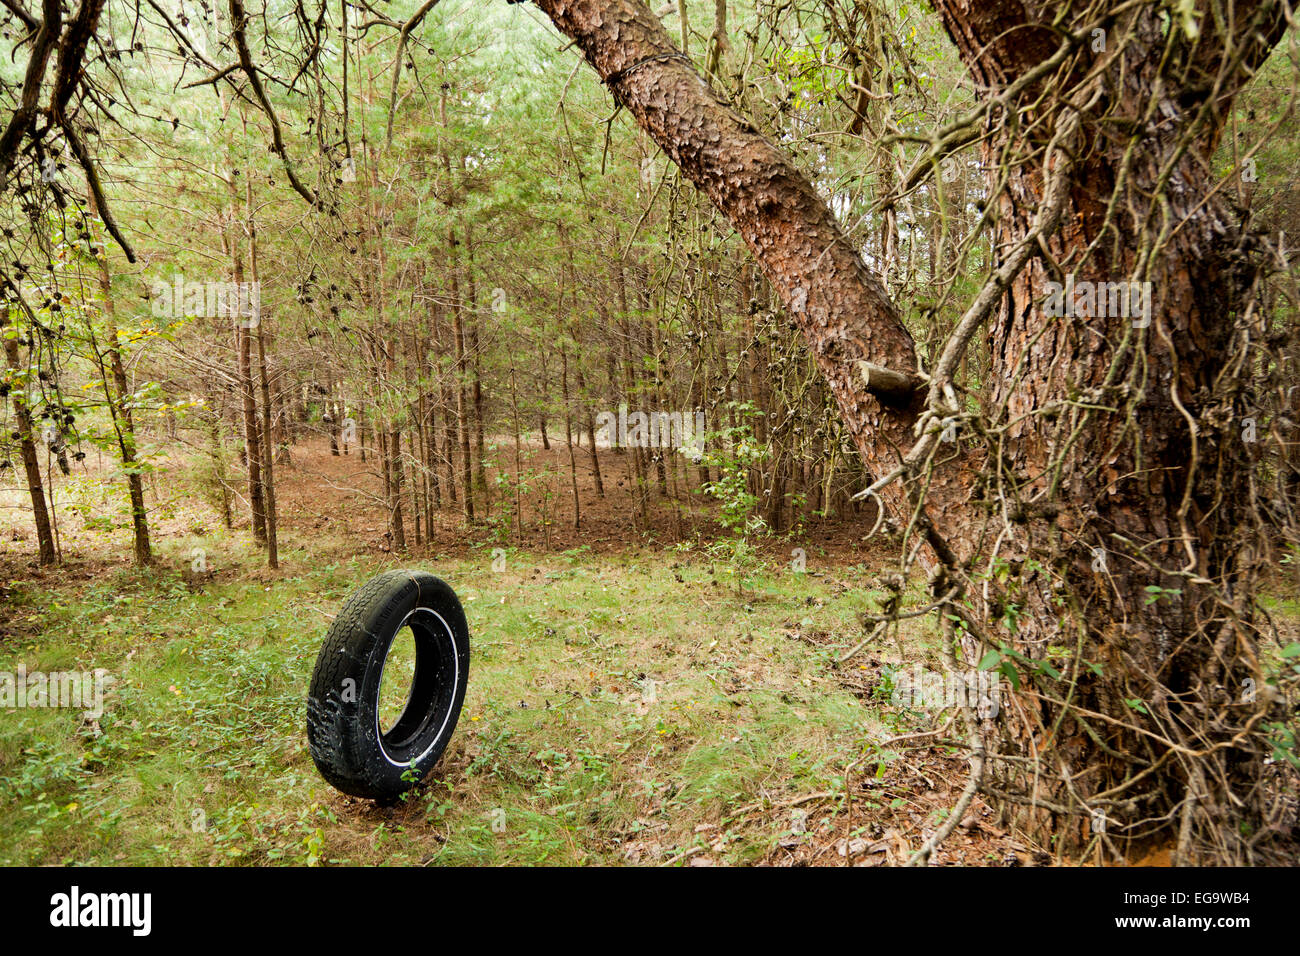 Tyre swing in an abandoned garden Stock Photo: 78893448 - Alamy